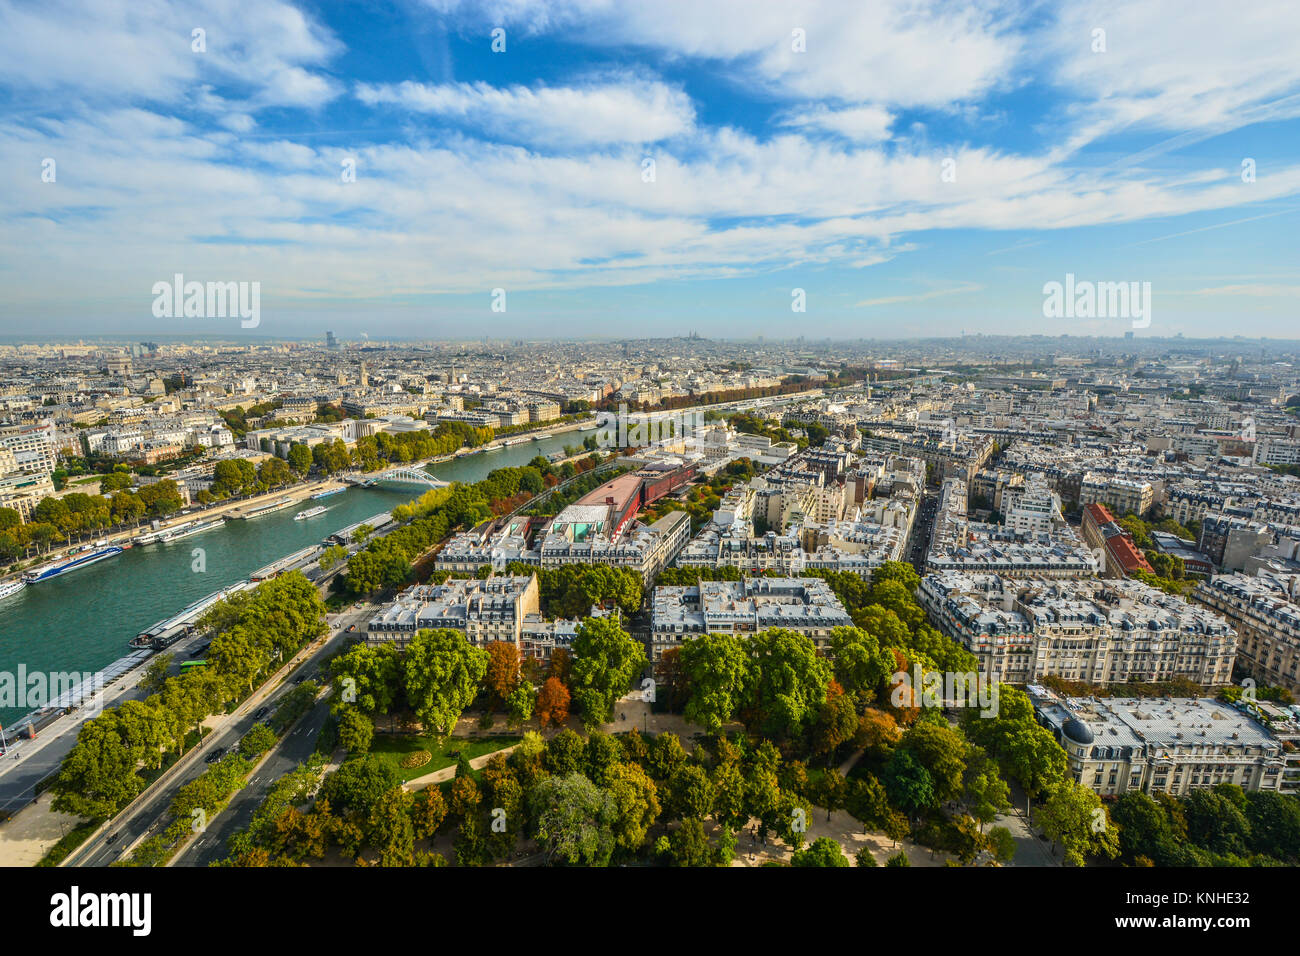 A view of the city of Paris, France including the river Seine from the platform of the Eiffel Tower on a partly - Stock Image